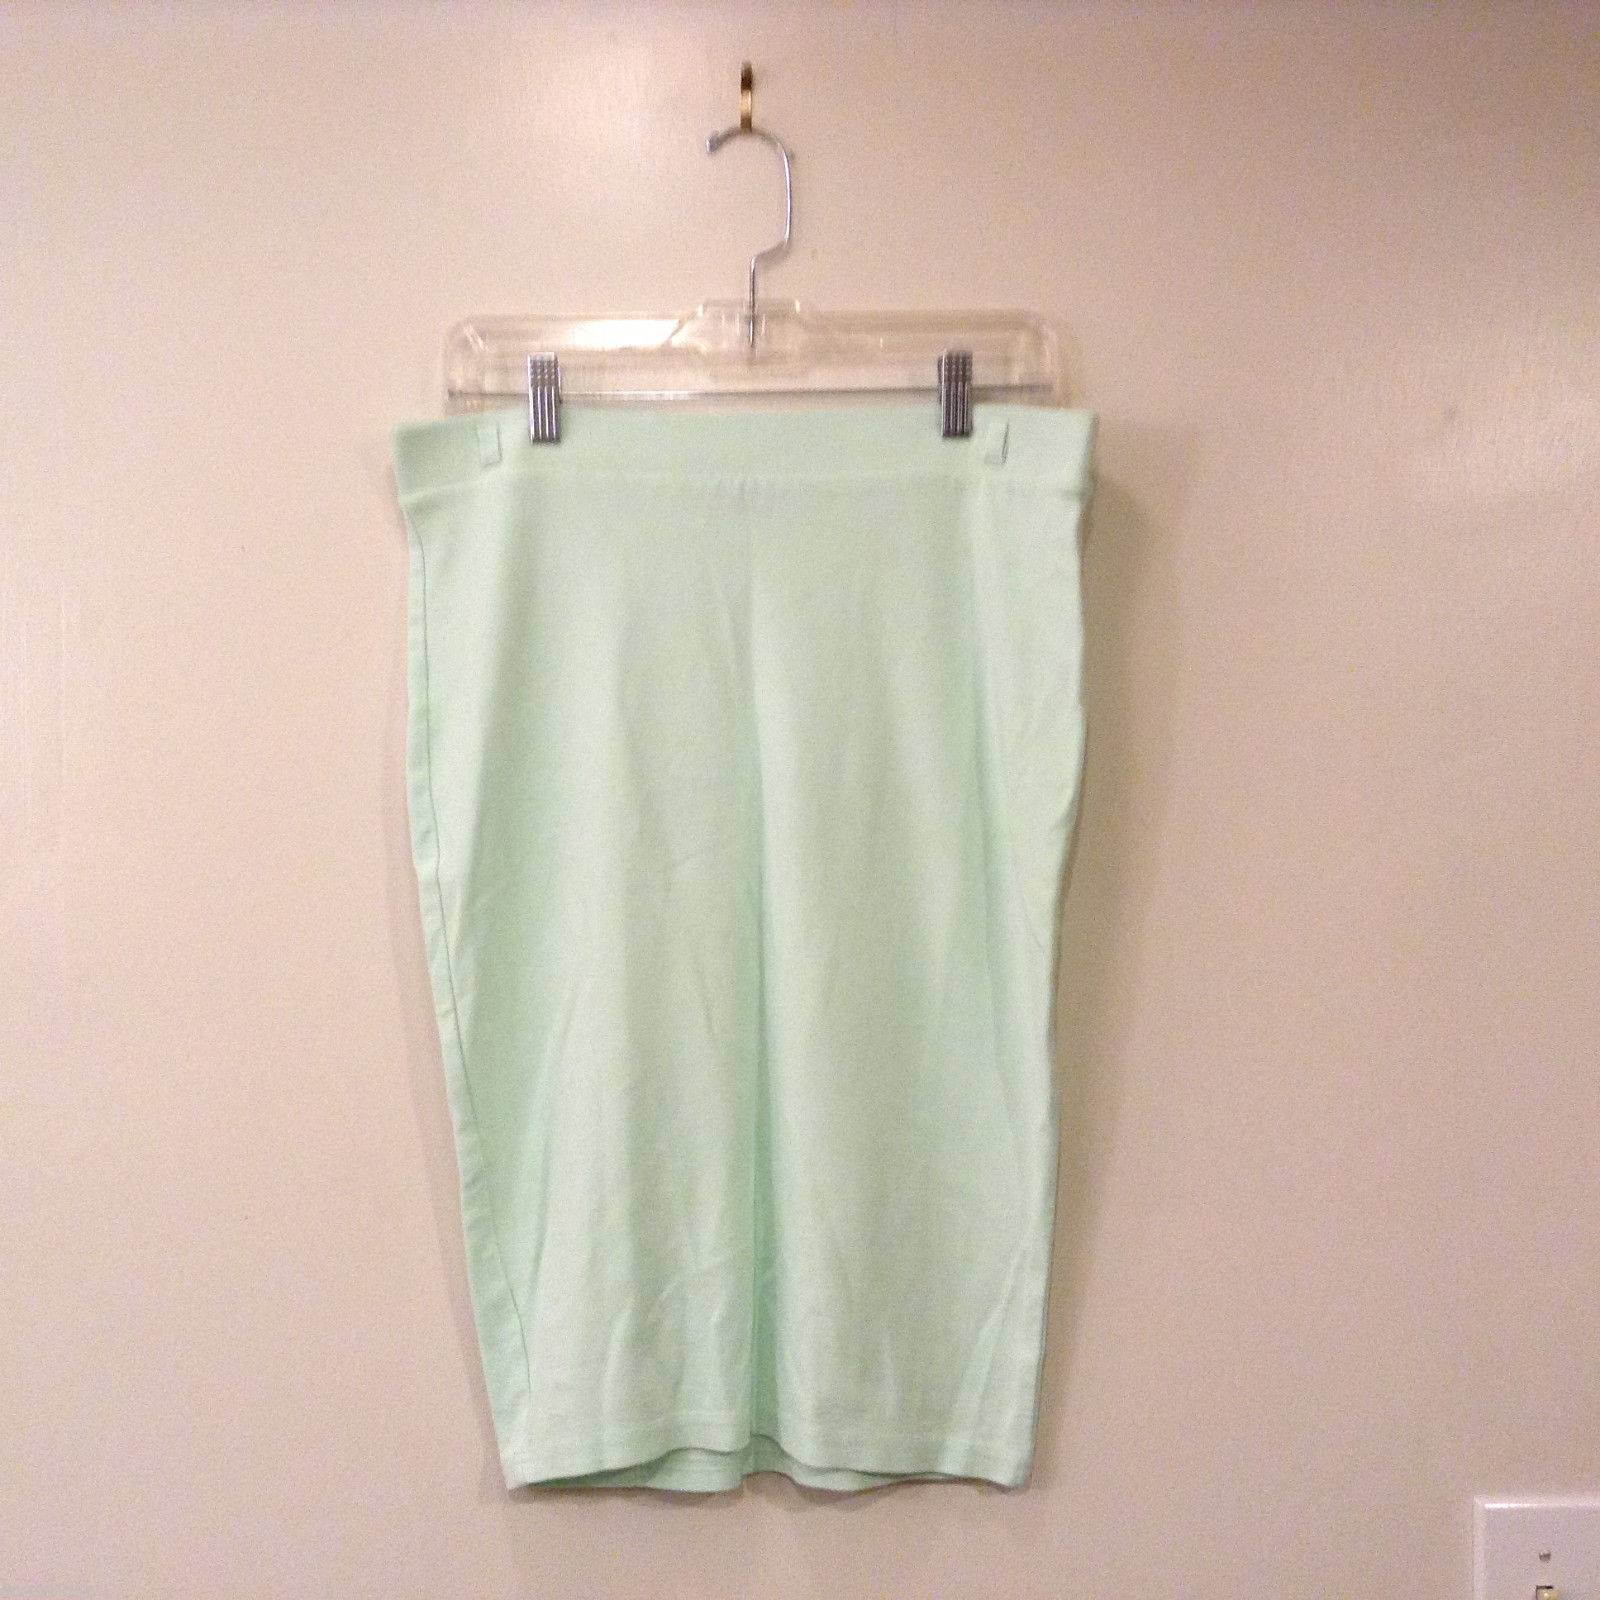 H&M Women Size L Pencil Bodycon Skirt Mint Pastel Green Stretchy Knit Belt-able